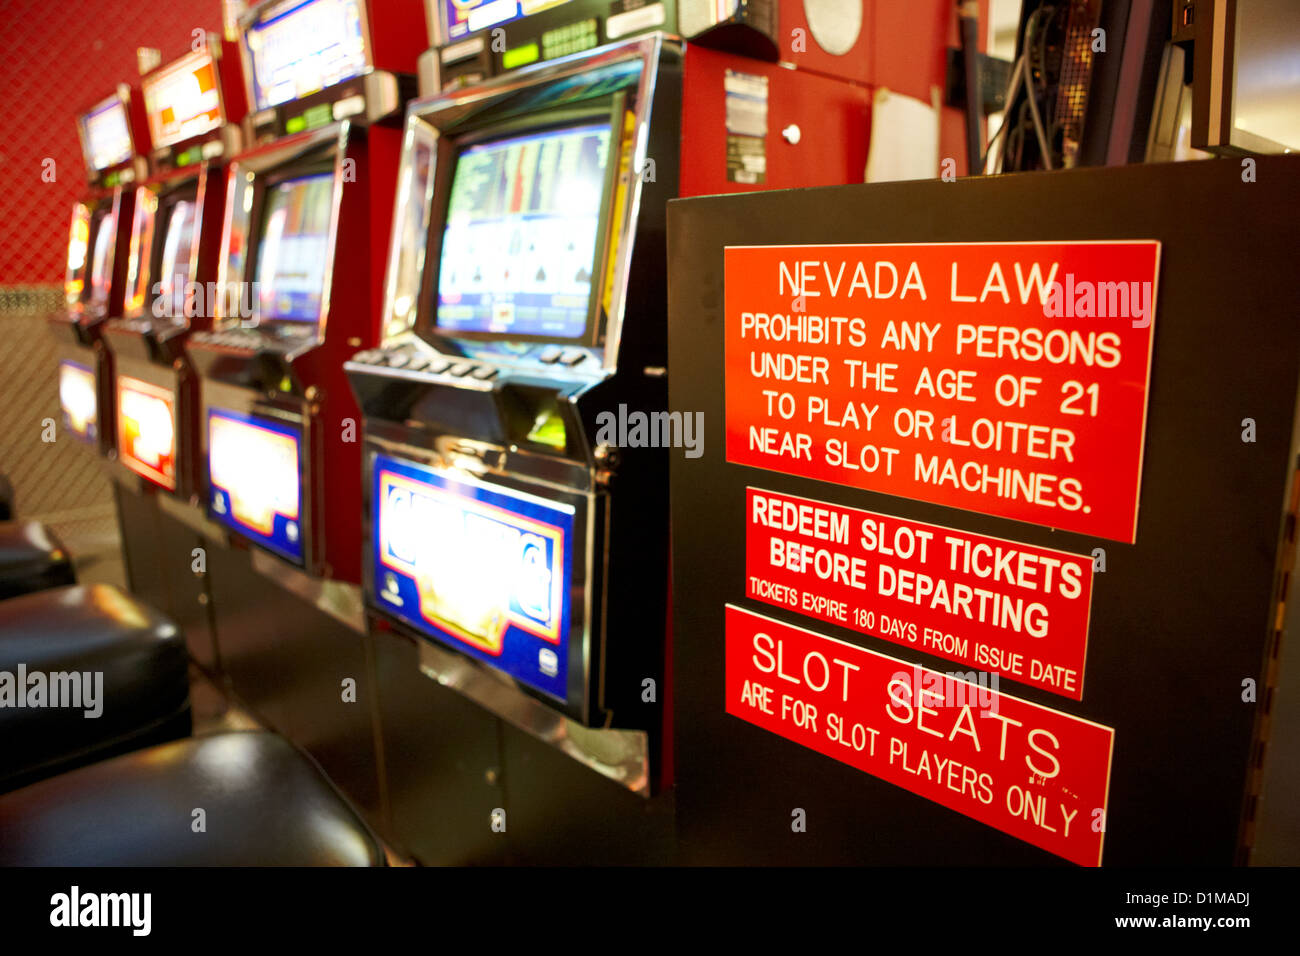 What is the legal age to gamble in las vegas nevada best online casino free money no deposit